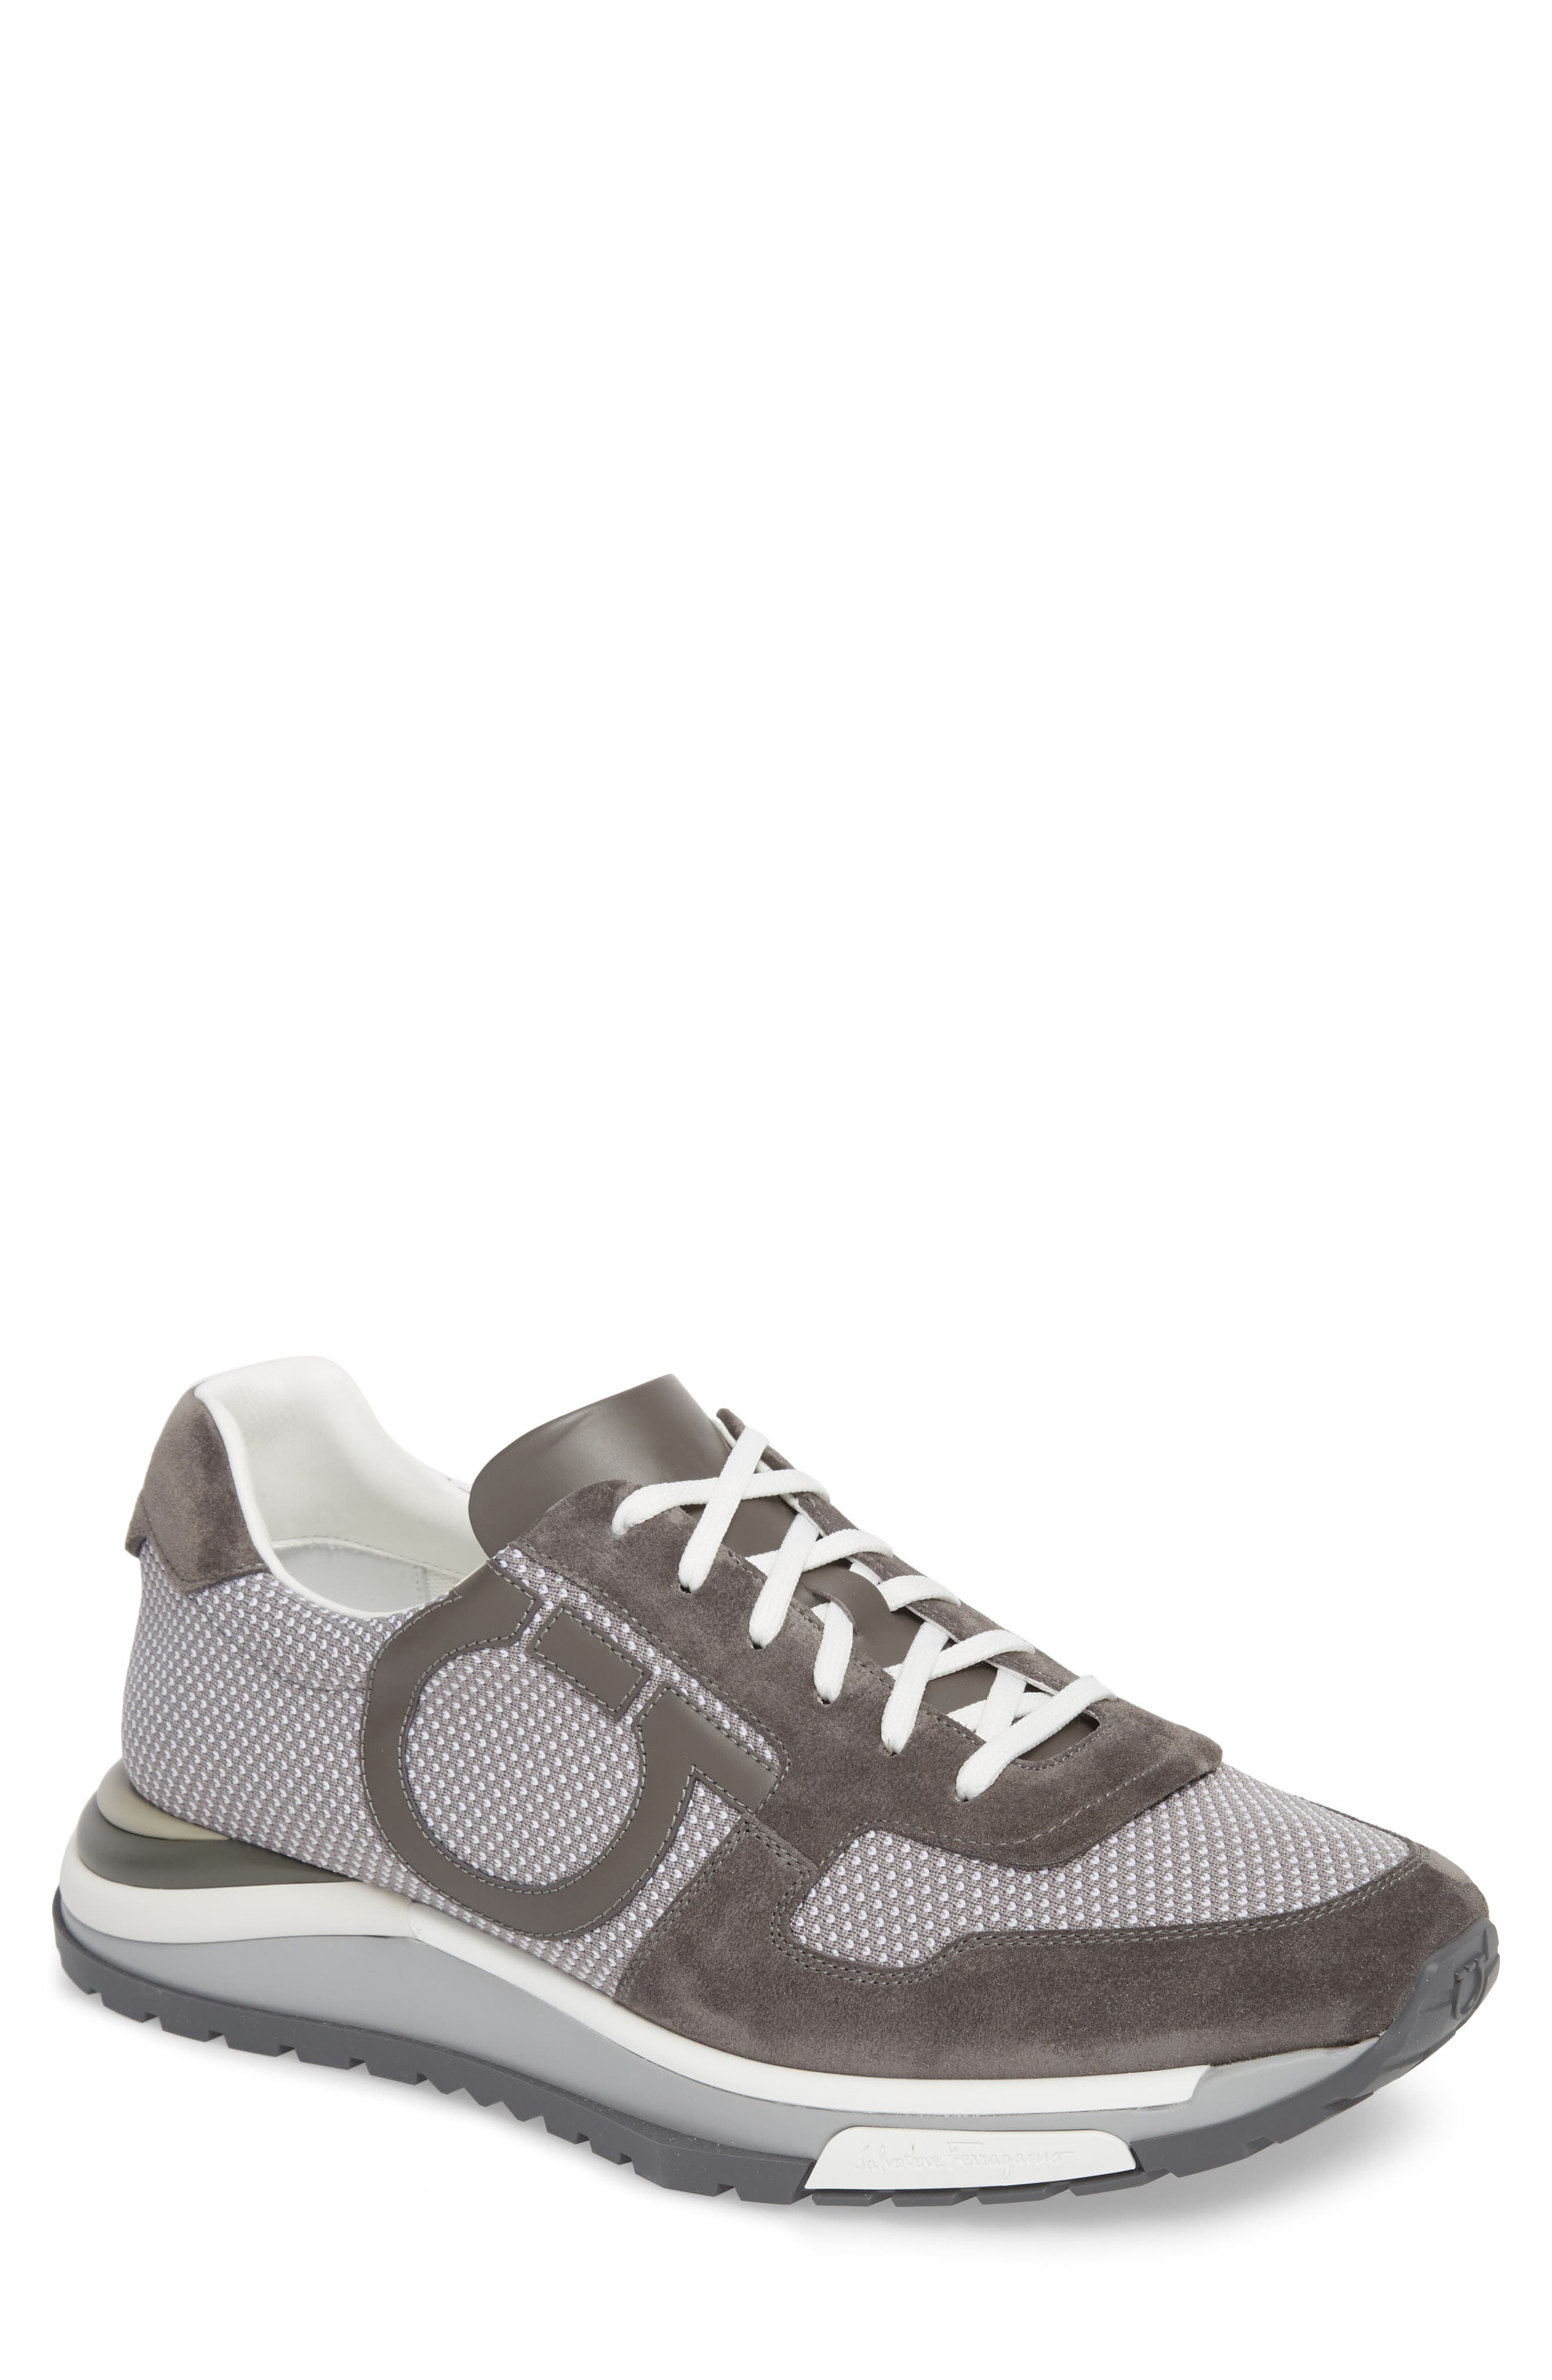 Brooklyn 2 Woven Sneaker,                         Main,                         color, GREY